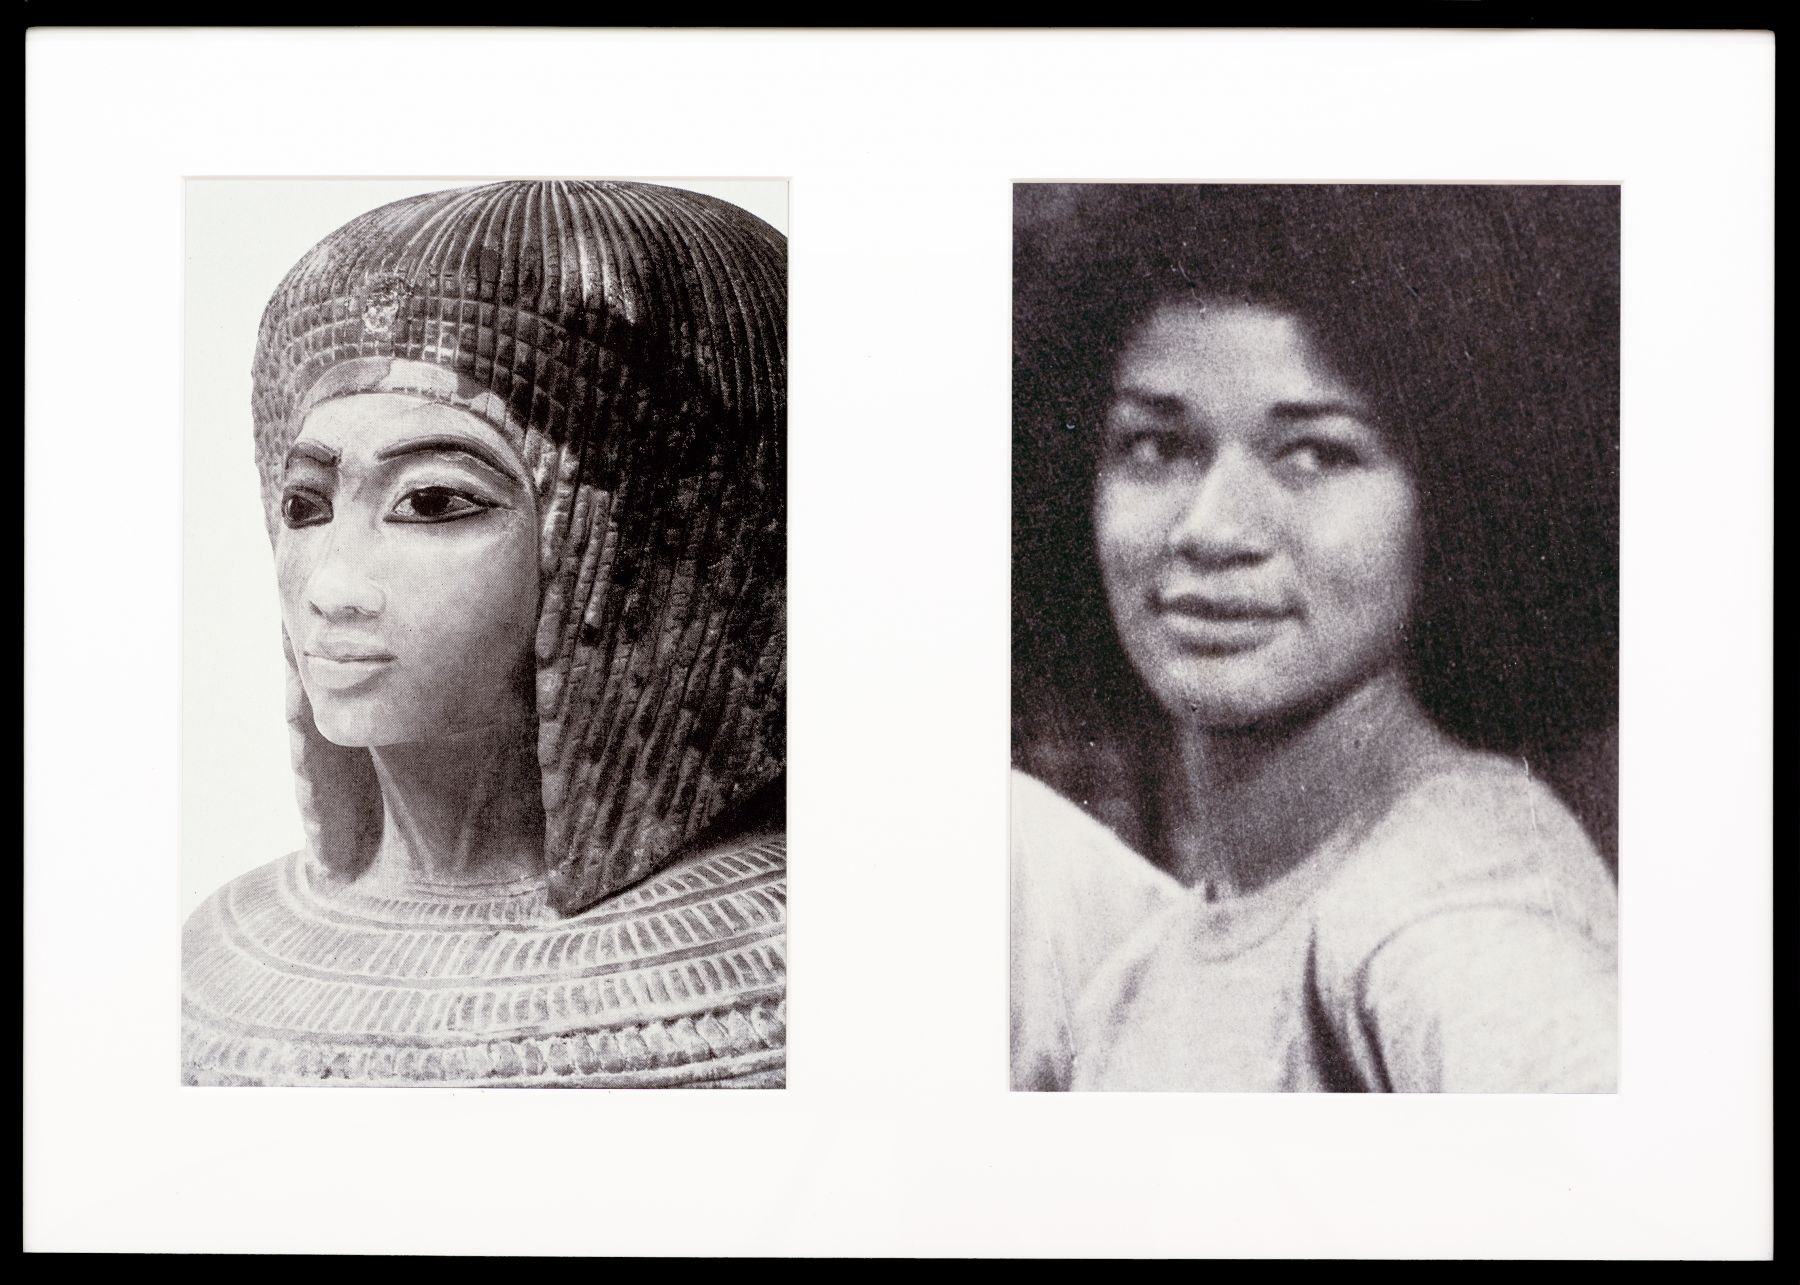 Miscegenated Family Album (Sisters II), L: Nefertiti's daughter Merytaten; R: Devonia's daughter, 1980/1994, Cibachrome print, 26h x 37w in (66.04h x 93.98w cm)